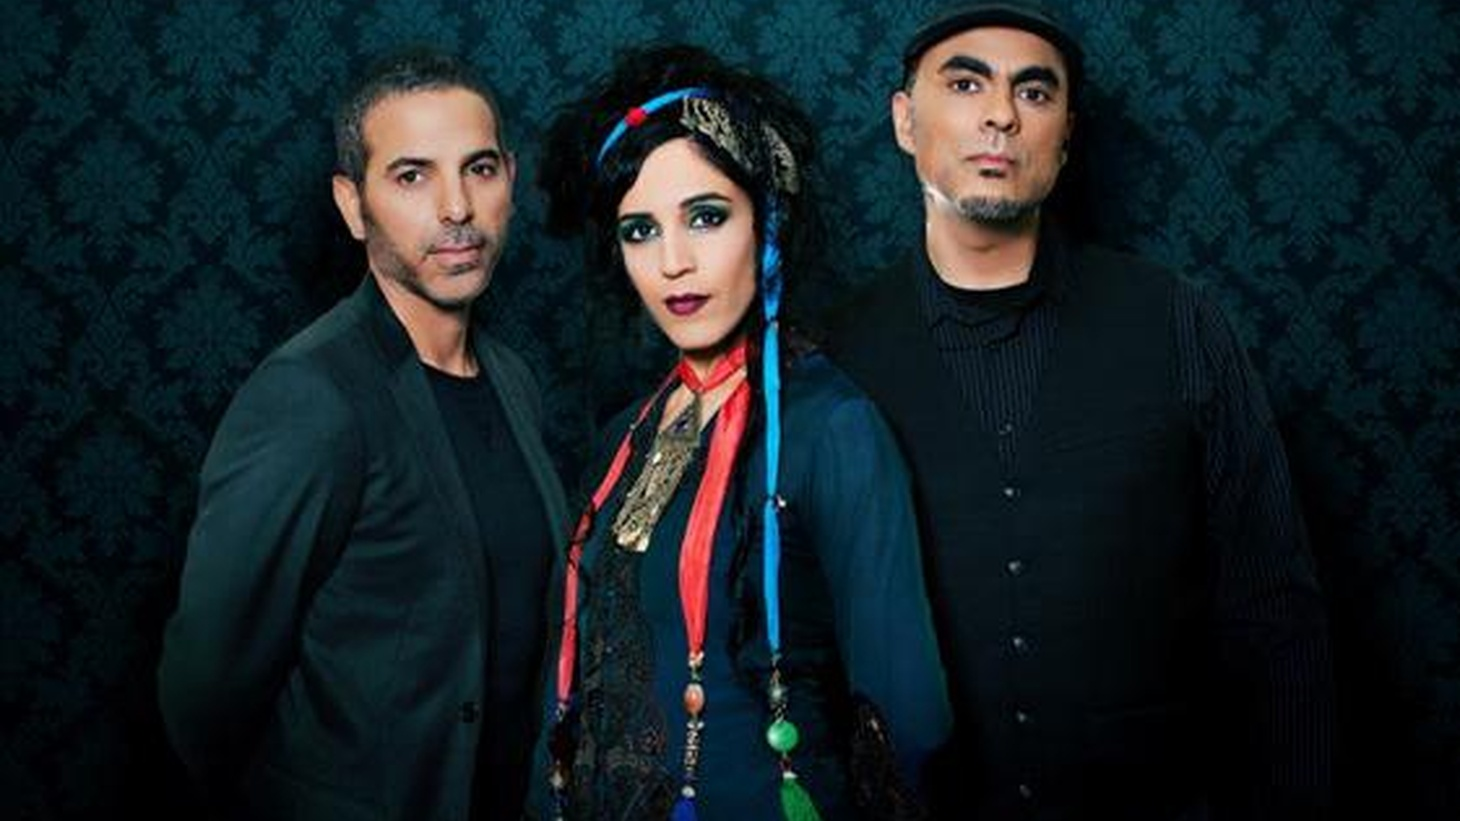 Niyaz draws inspiration from the folk traditions of Iran. Their newest release pays tribute to cultures that heed to the philosophy of passive resistance.